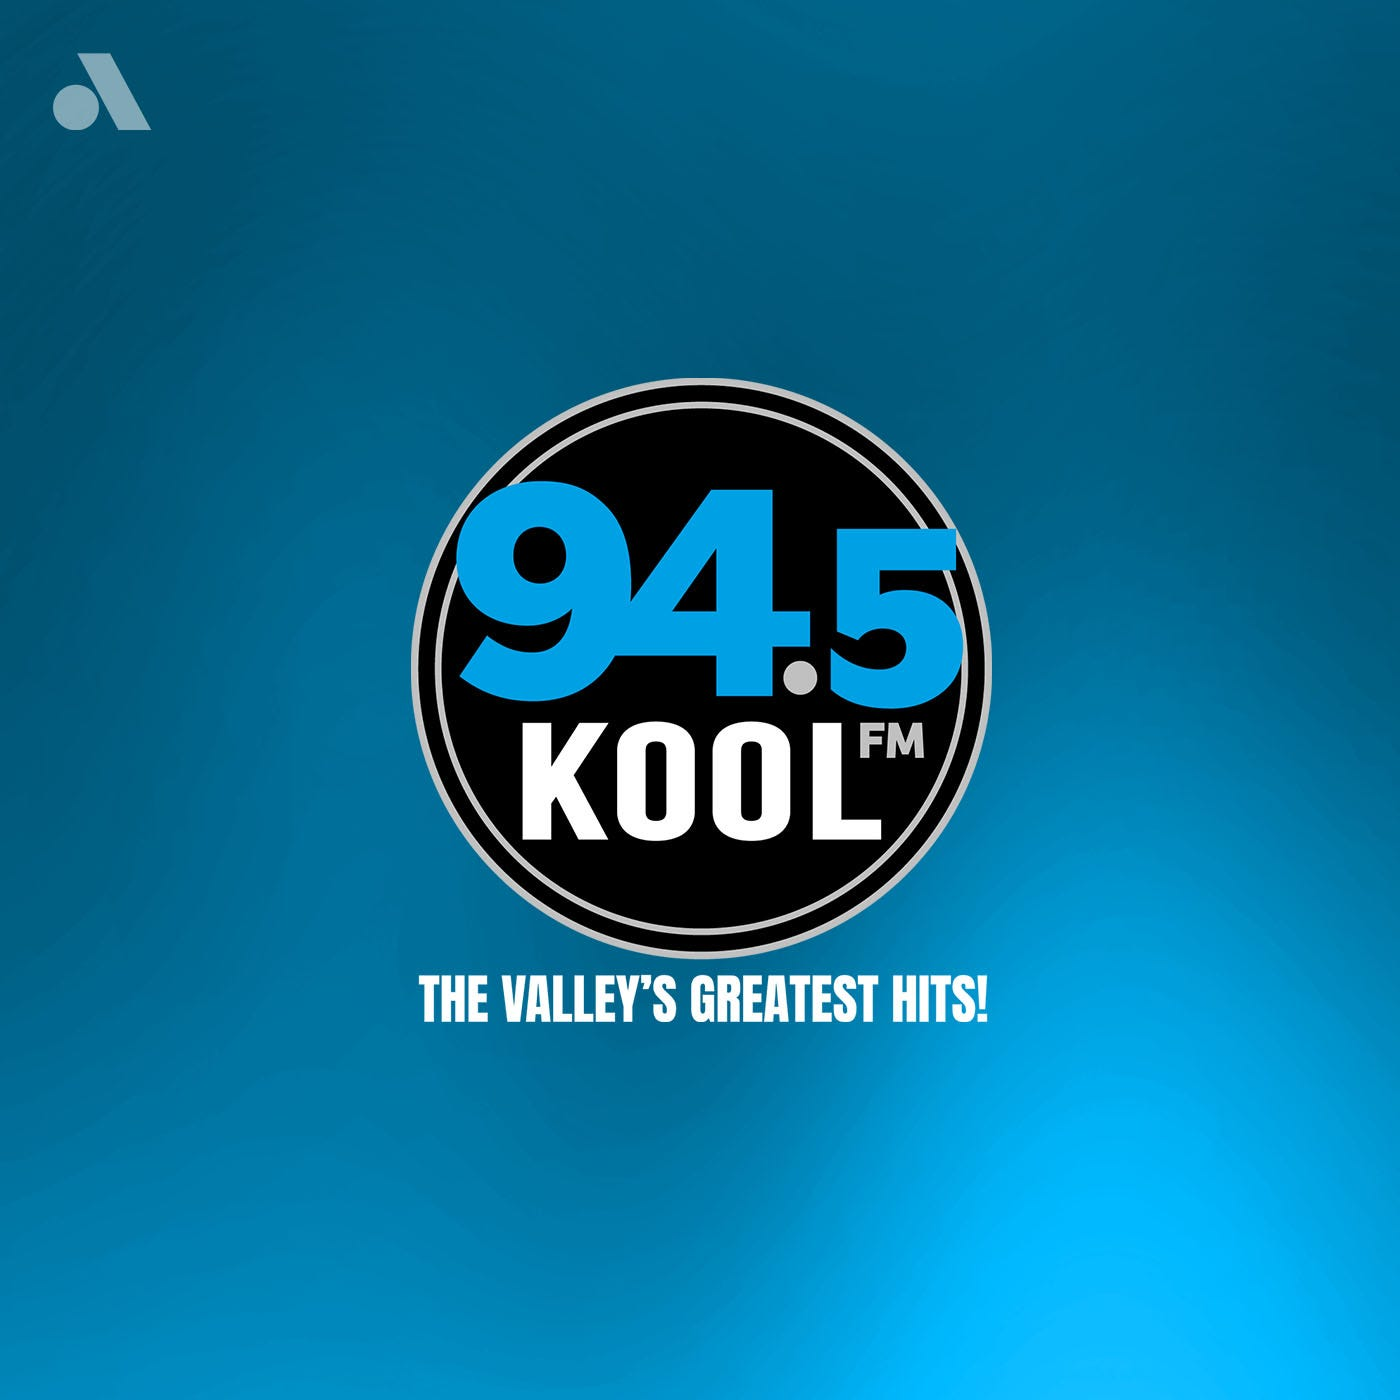 Casey Kasem's AT 40 from February 21, 1981 | 94 5 KOOL FM